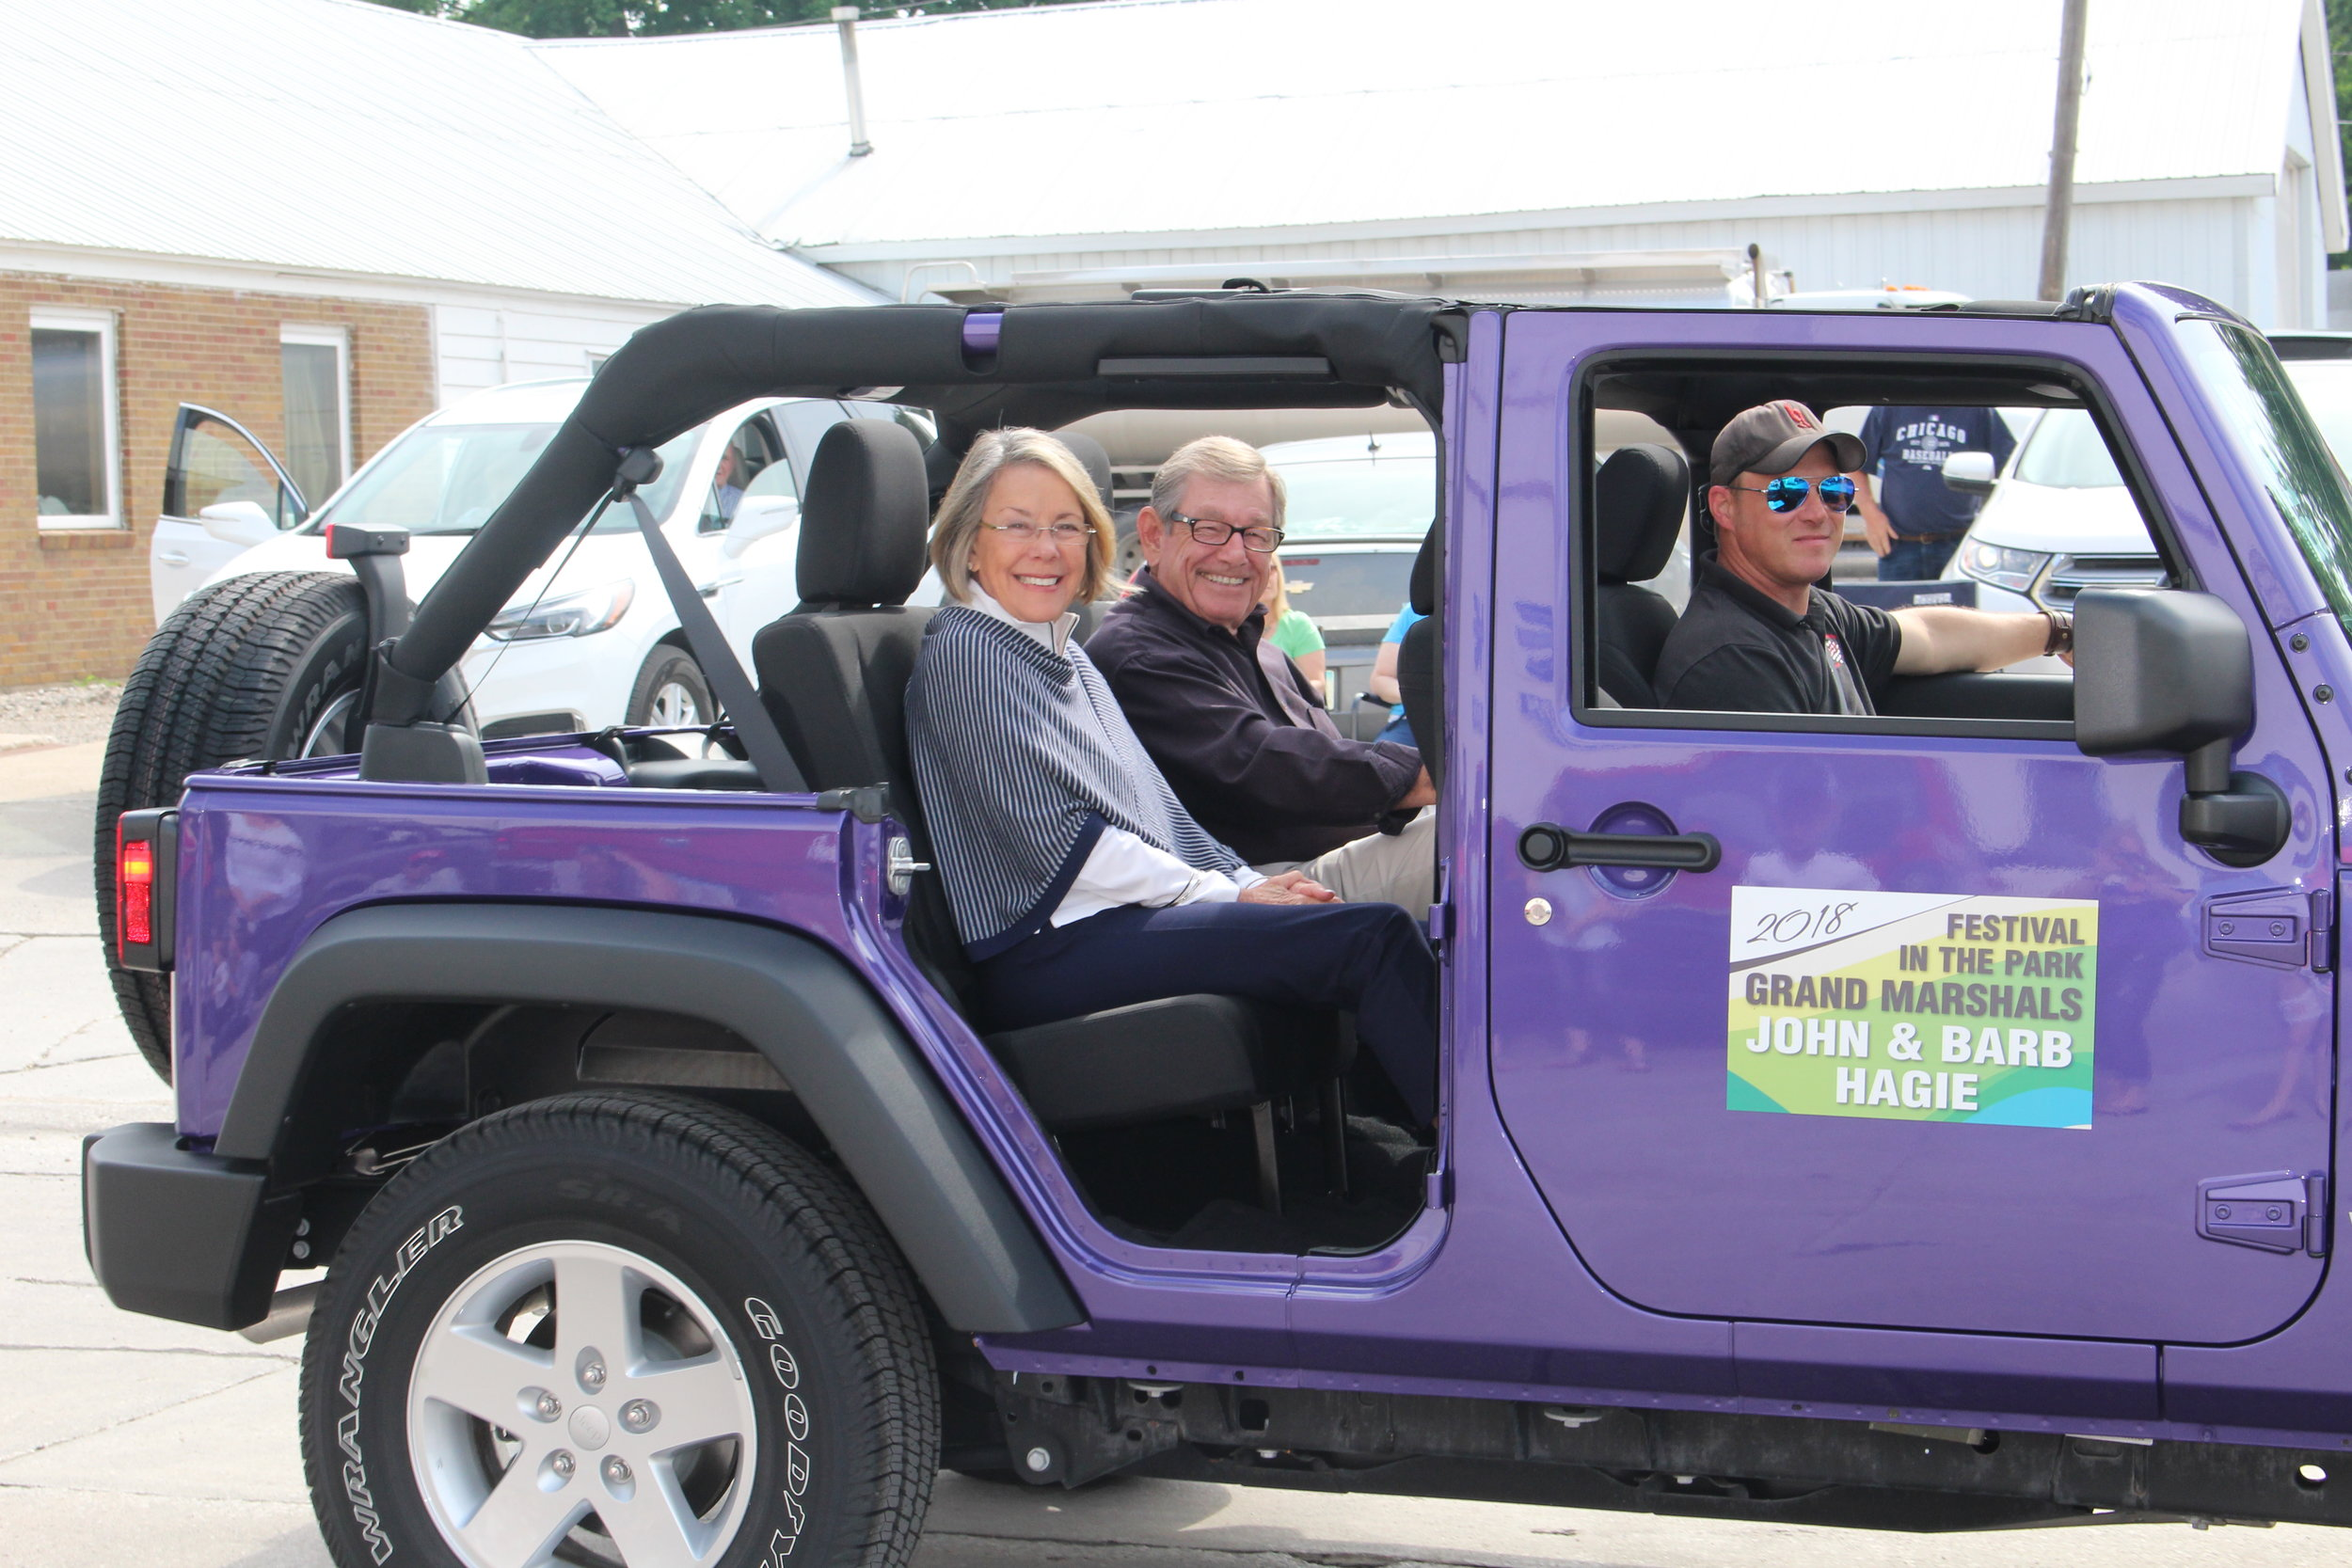 Grand Marshals in the Festival in the Park 2018 Parade